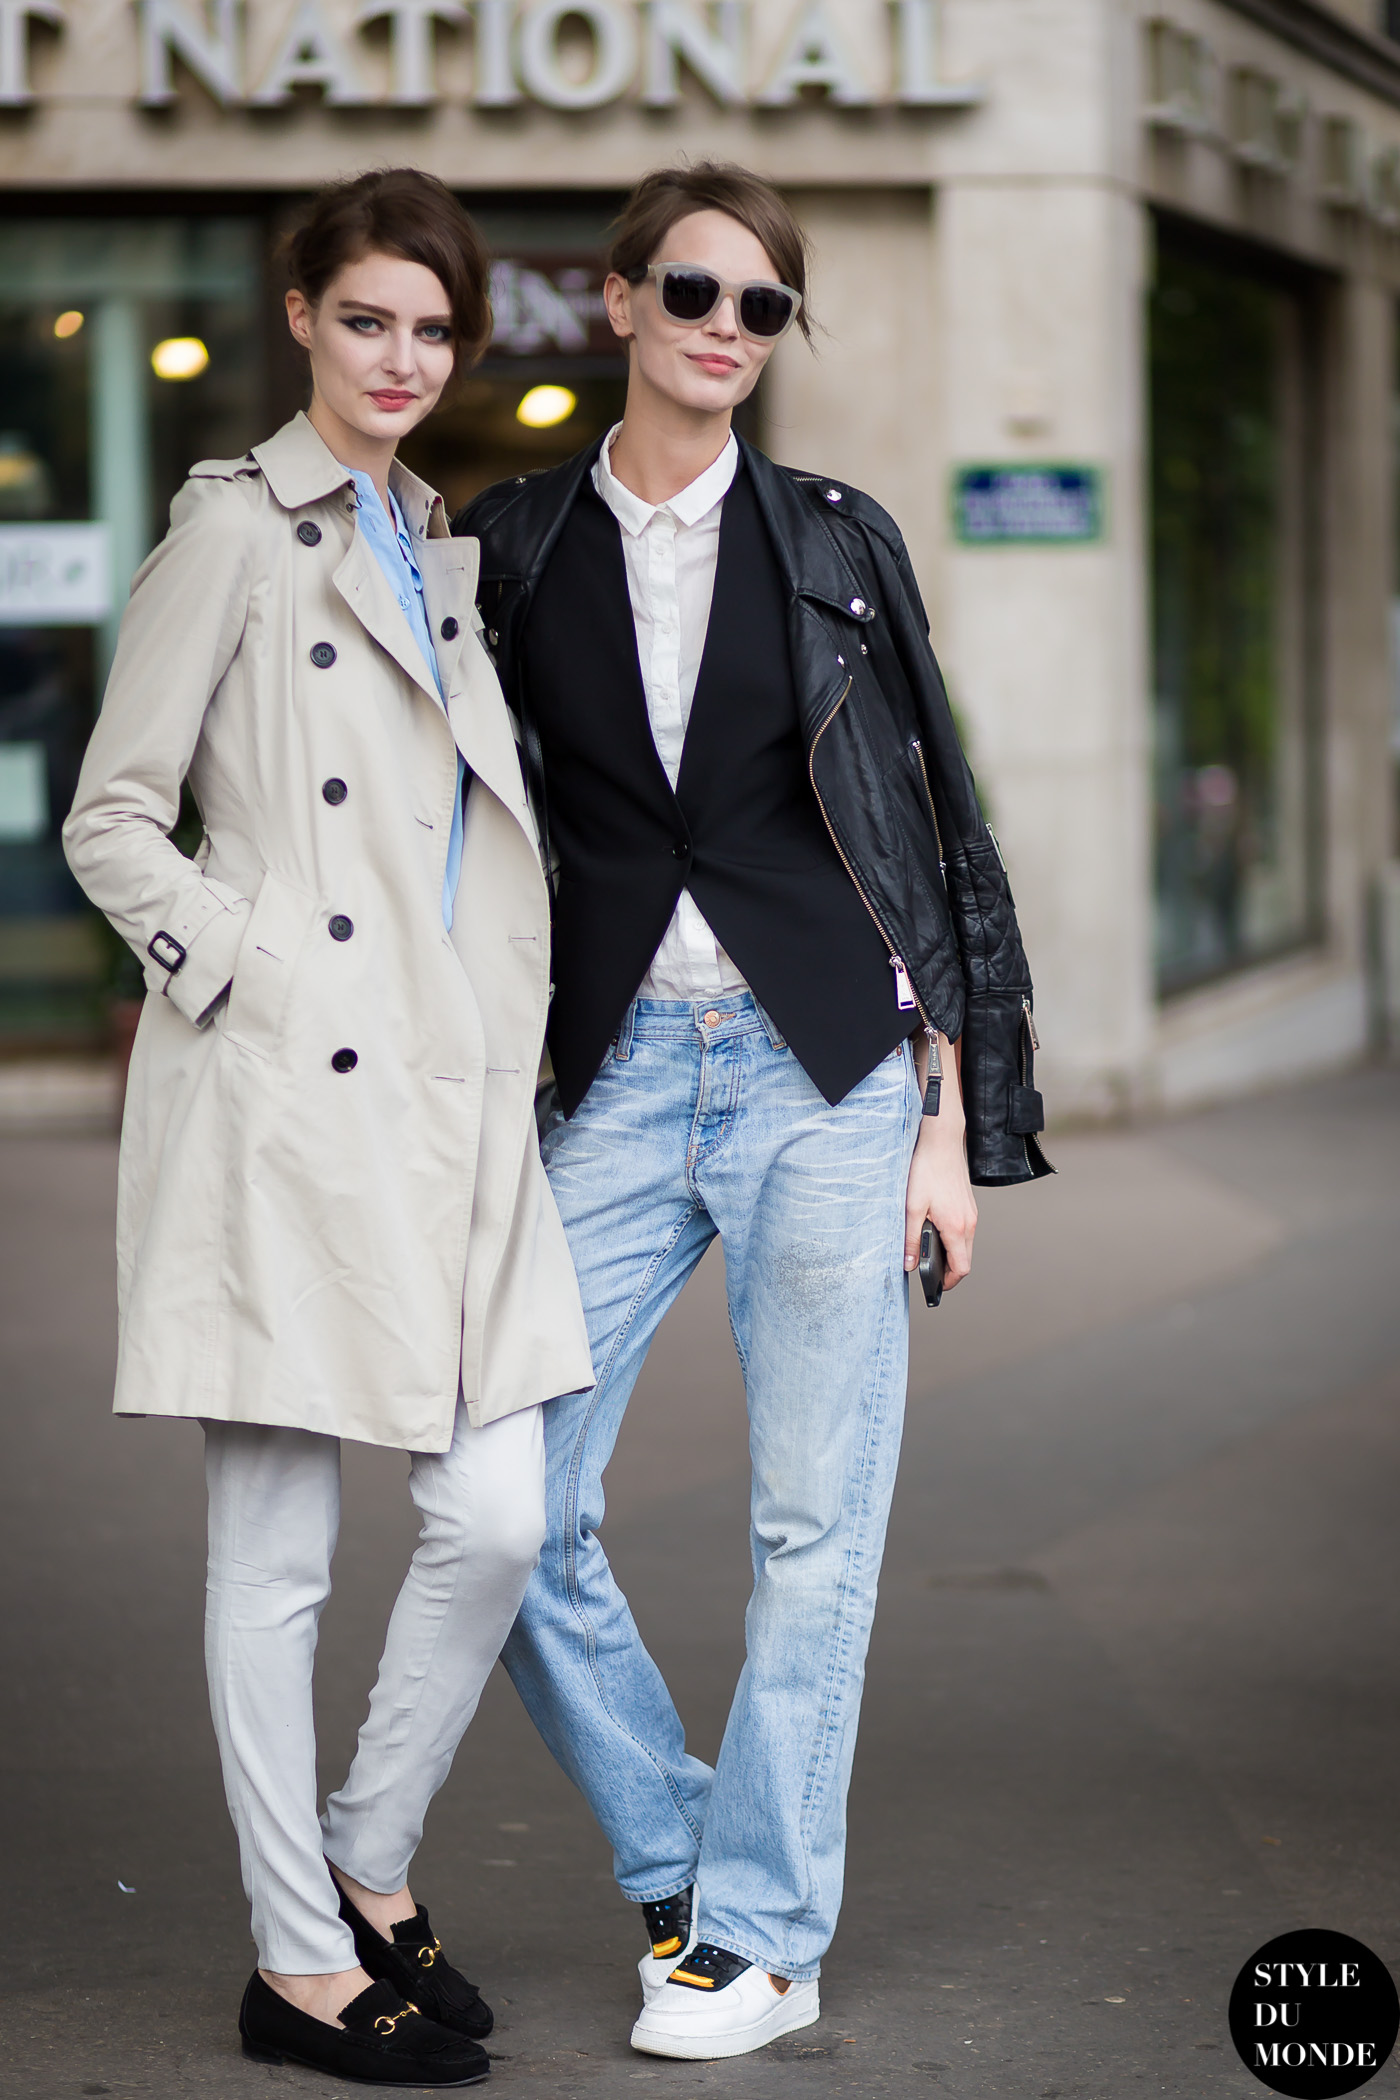 Mina Cvetkovic and Auguste Abeliunaite Street Style Street Fashion Streetsnaps by STYLEDUMONDE Street Style Fashion Blog